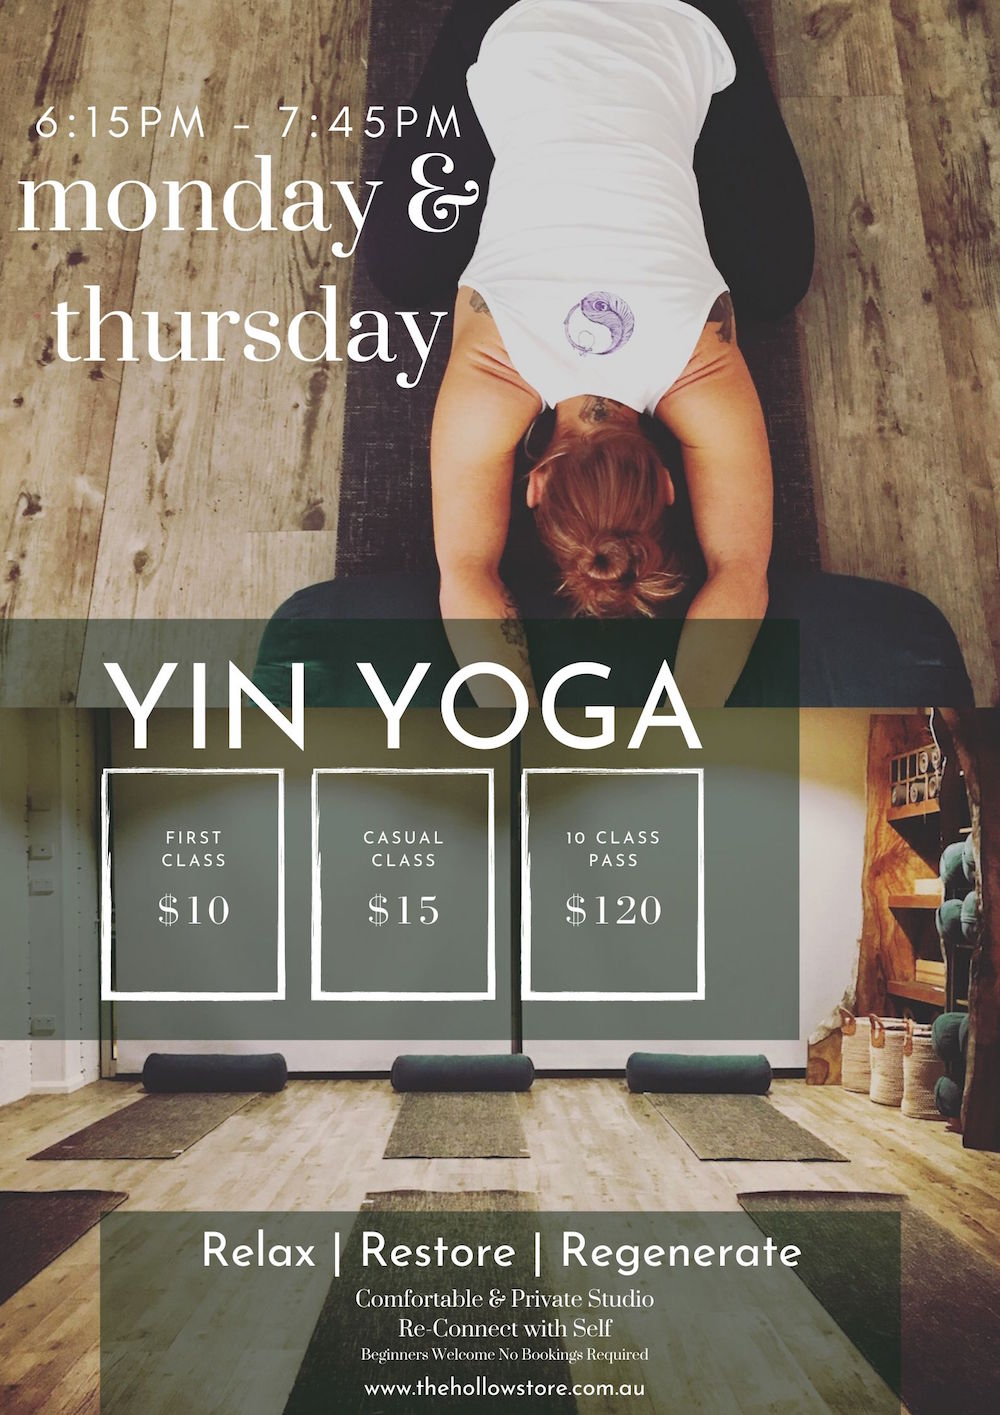 Yin Yoga Timetable The Hollow Store